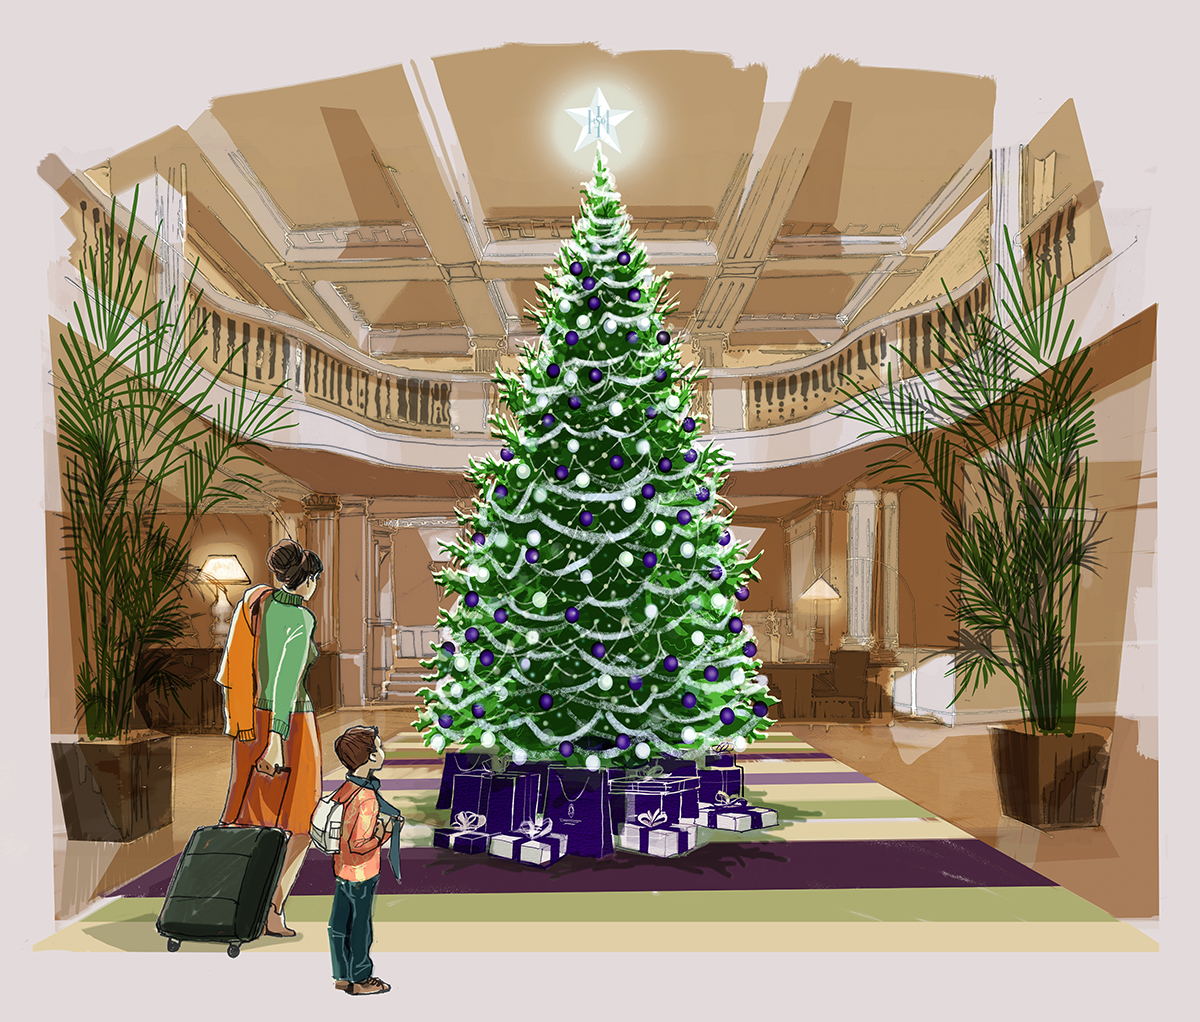 the-hamilton-inches-advent-tree-at-the-balmoral-illustration